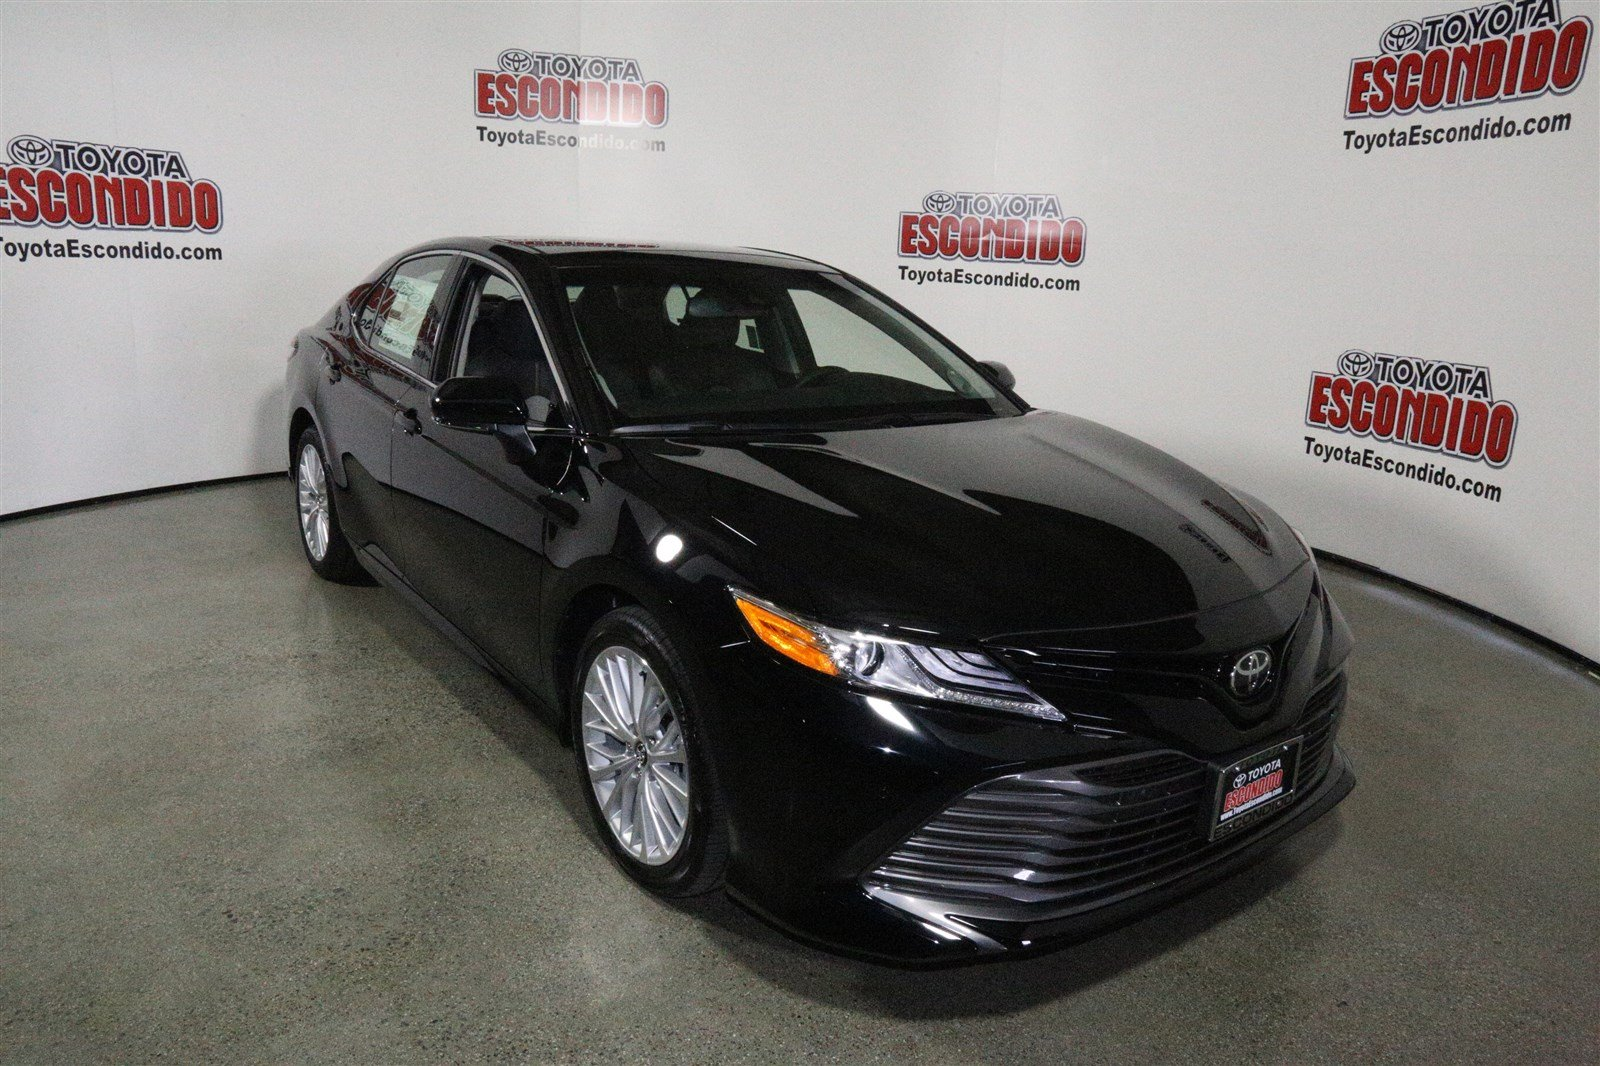 new 2018 toyota camry xle v6 4dr car in escondido 1015166 toyota escondido. Black Bedroom Furniture Sets. Home Design Ideas